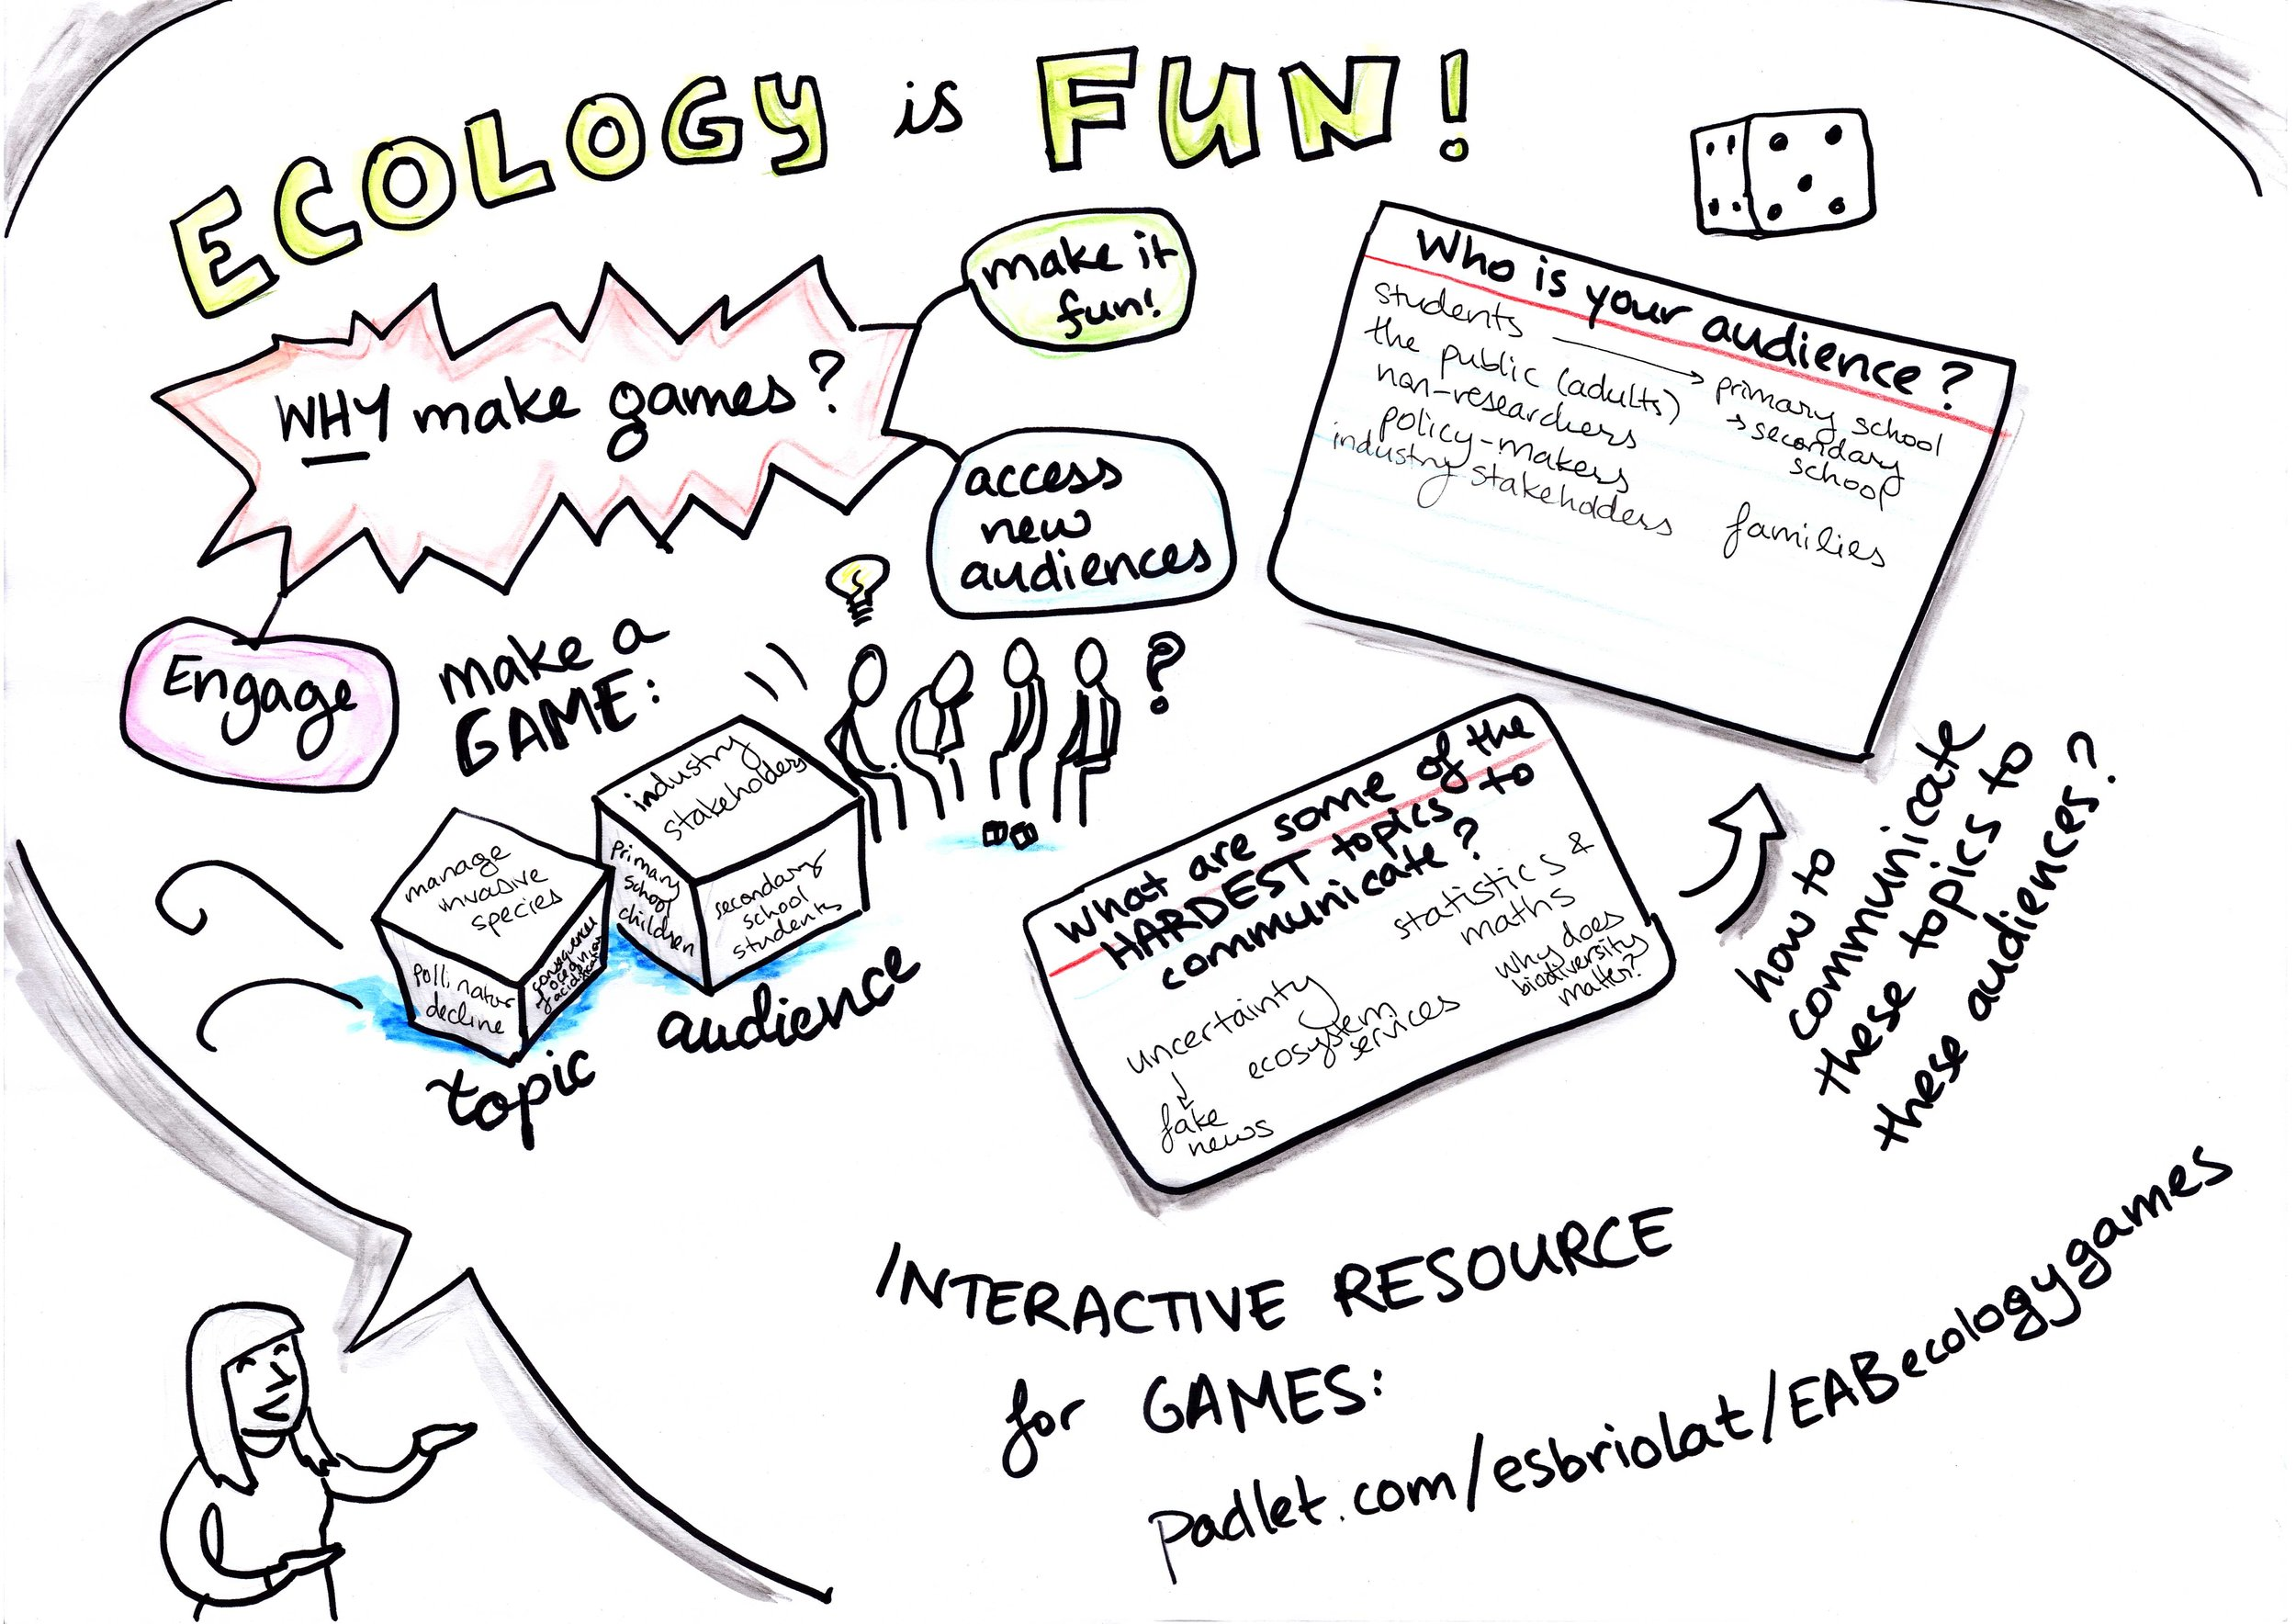 Ecology is Fun: Designing Interactive Games for Outreach